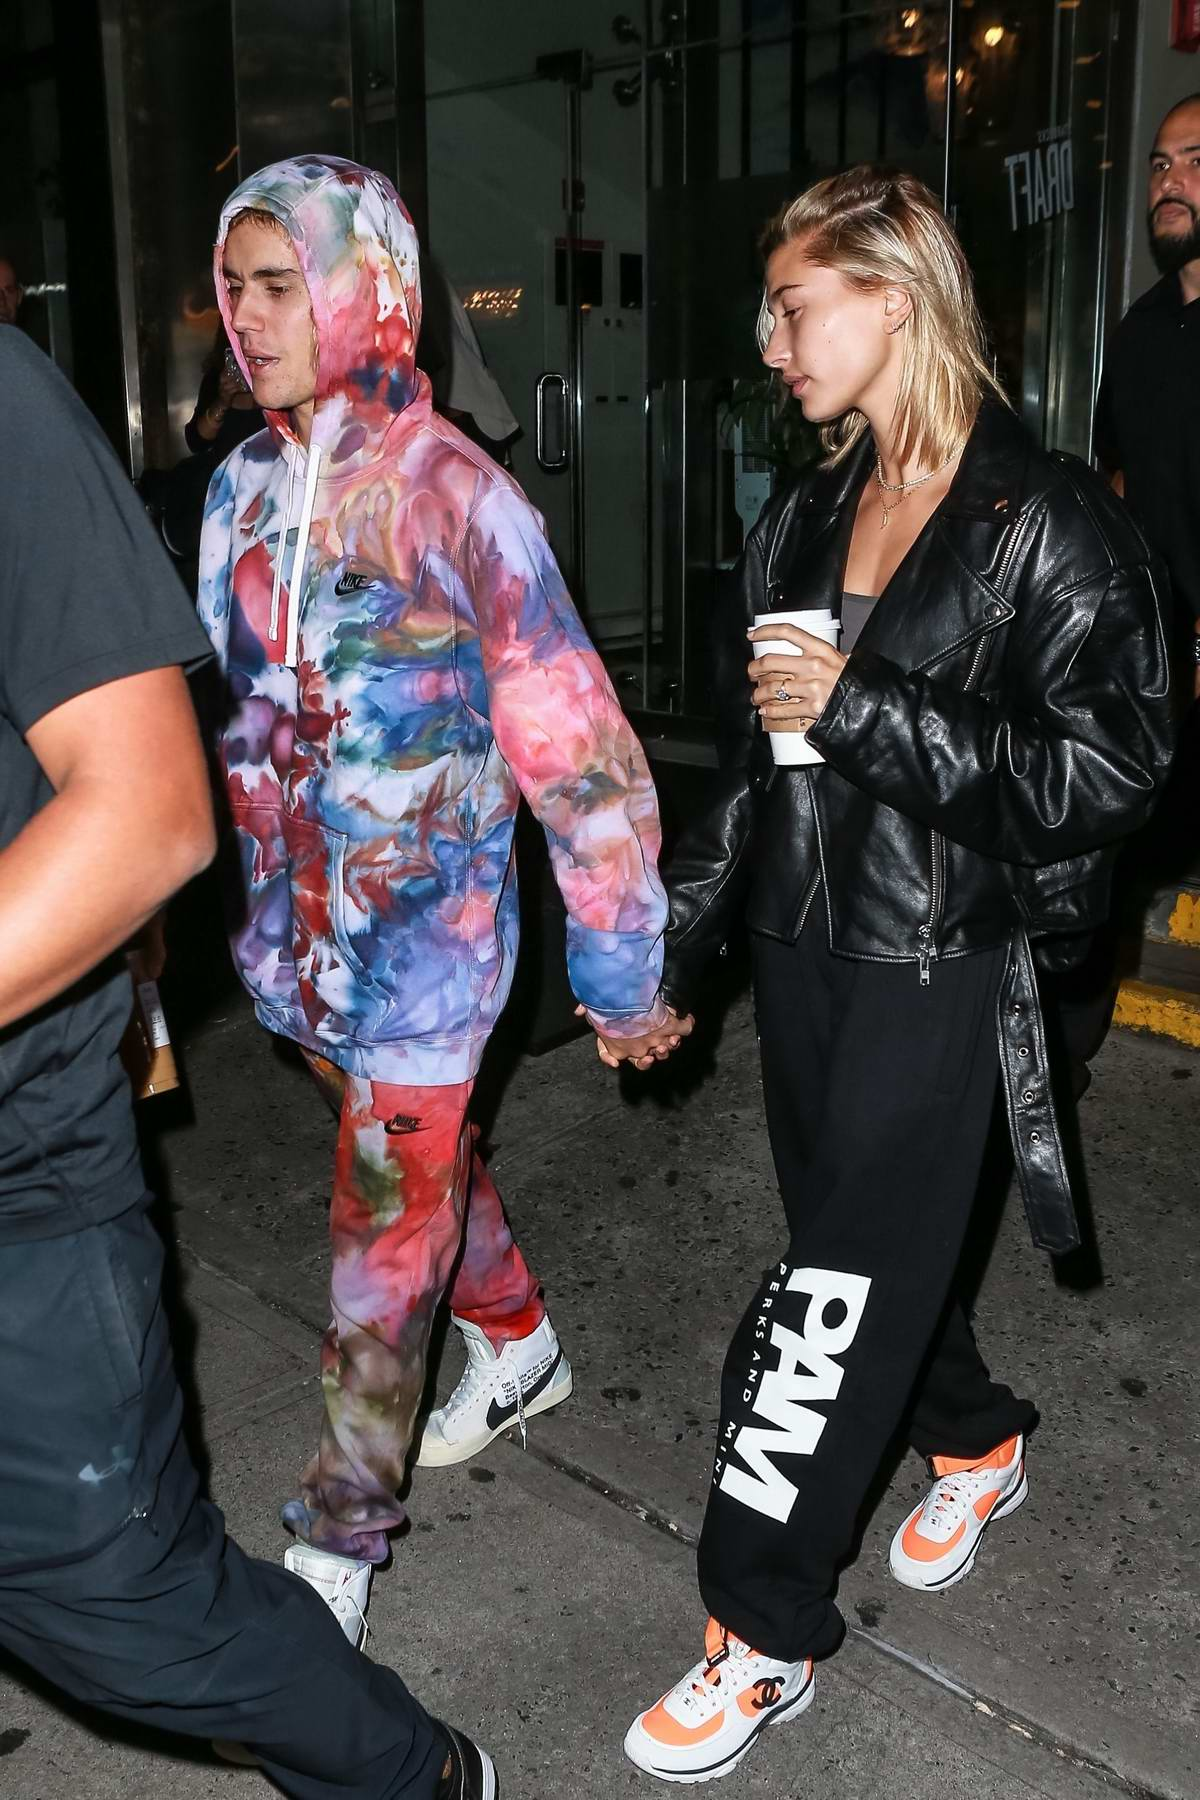 Hailey Baldwin and Justin Bieber spotted amidst wedding rumors as they stopped by a Starbucks to grab coffee in New York City